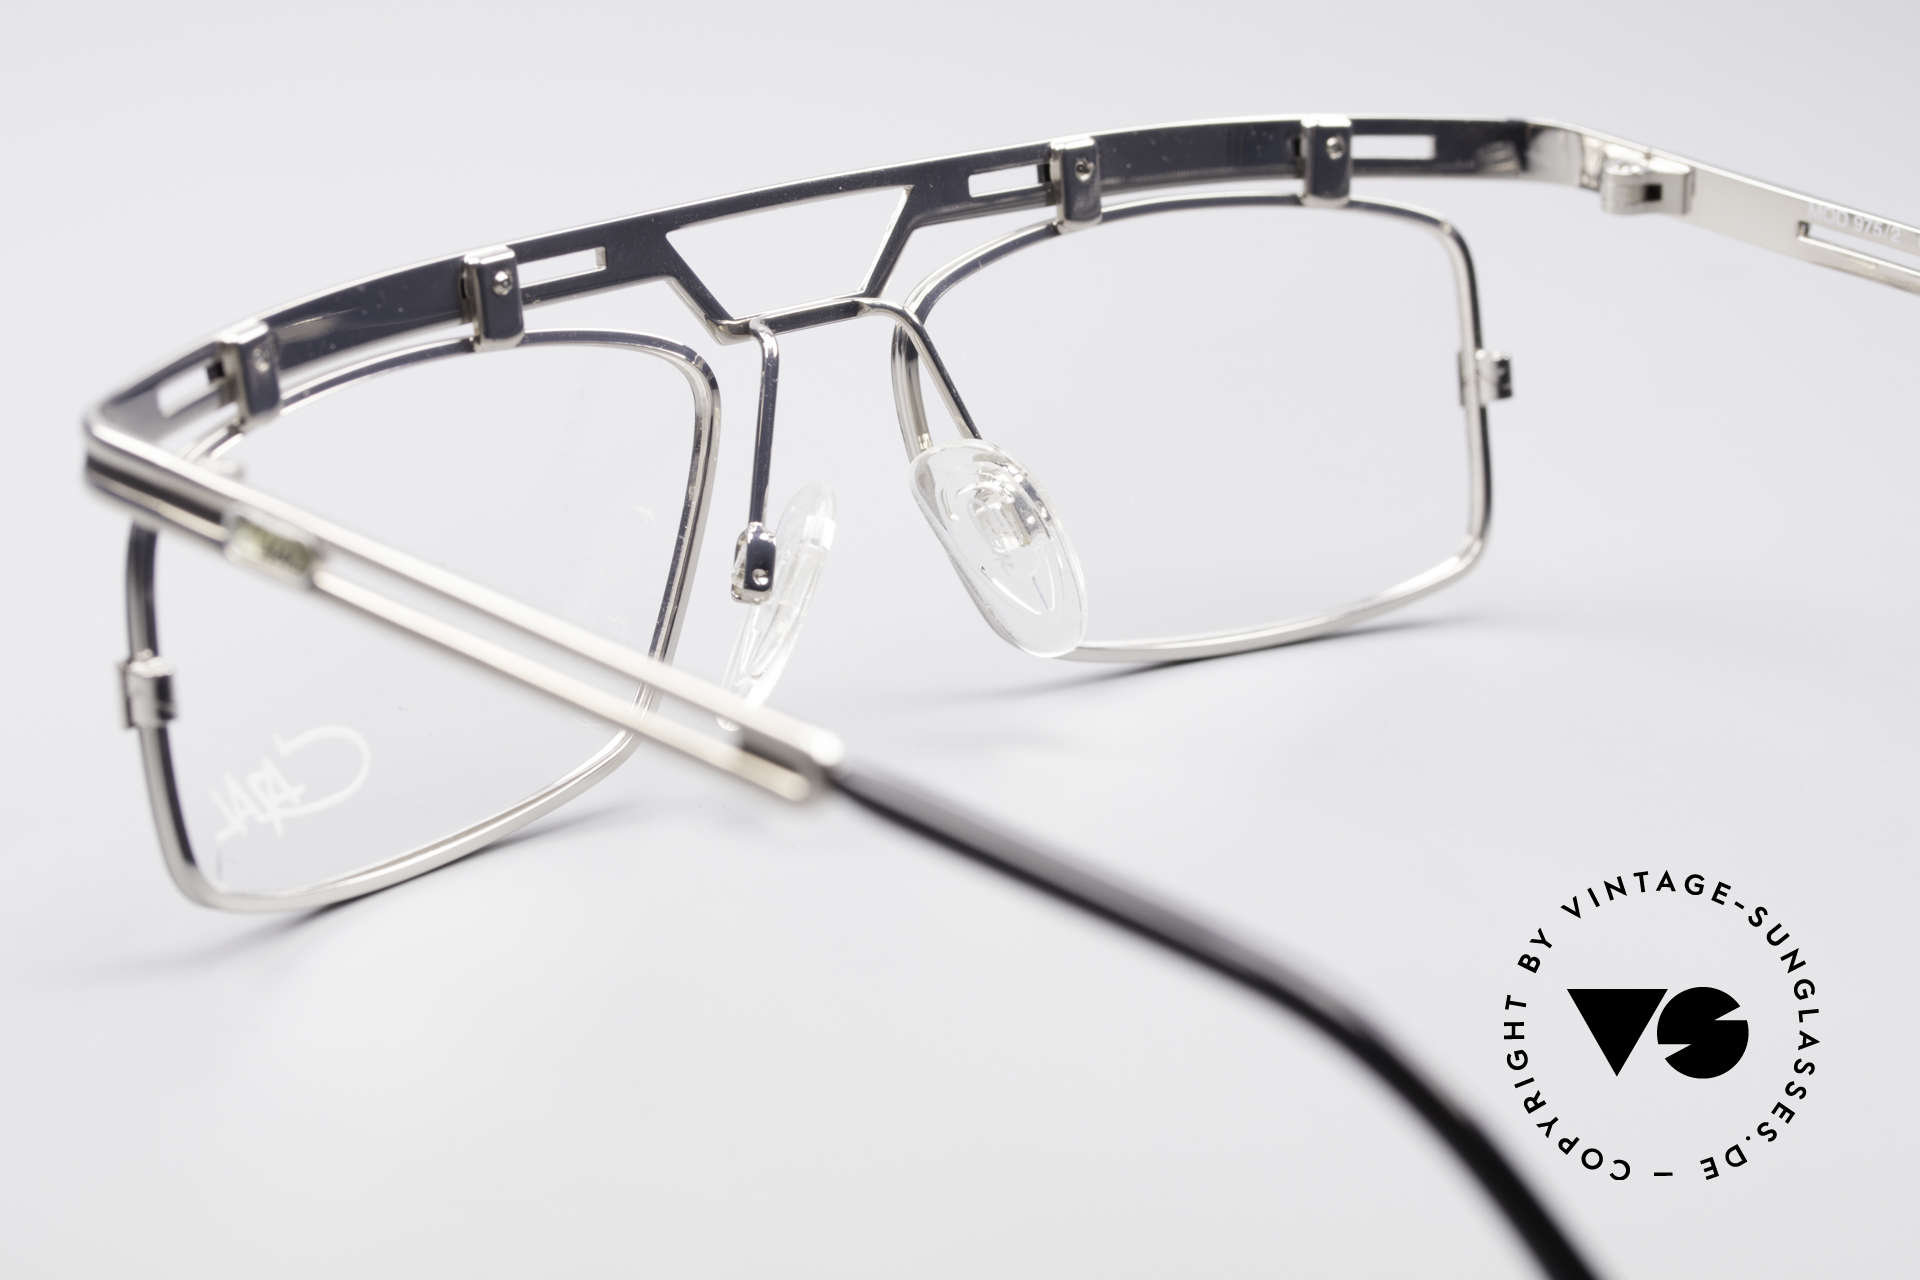 Cazal 975 True Vintage No Retro Specs, NO retro eyeglasses, but an authentic 90's ORIGINAL, Made for Men